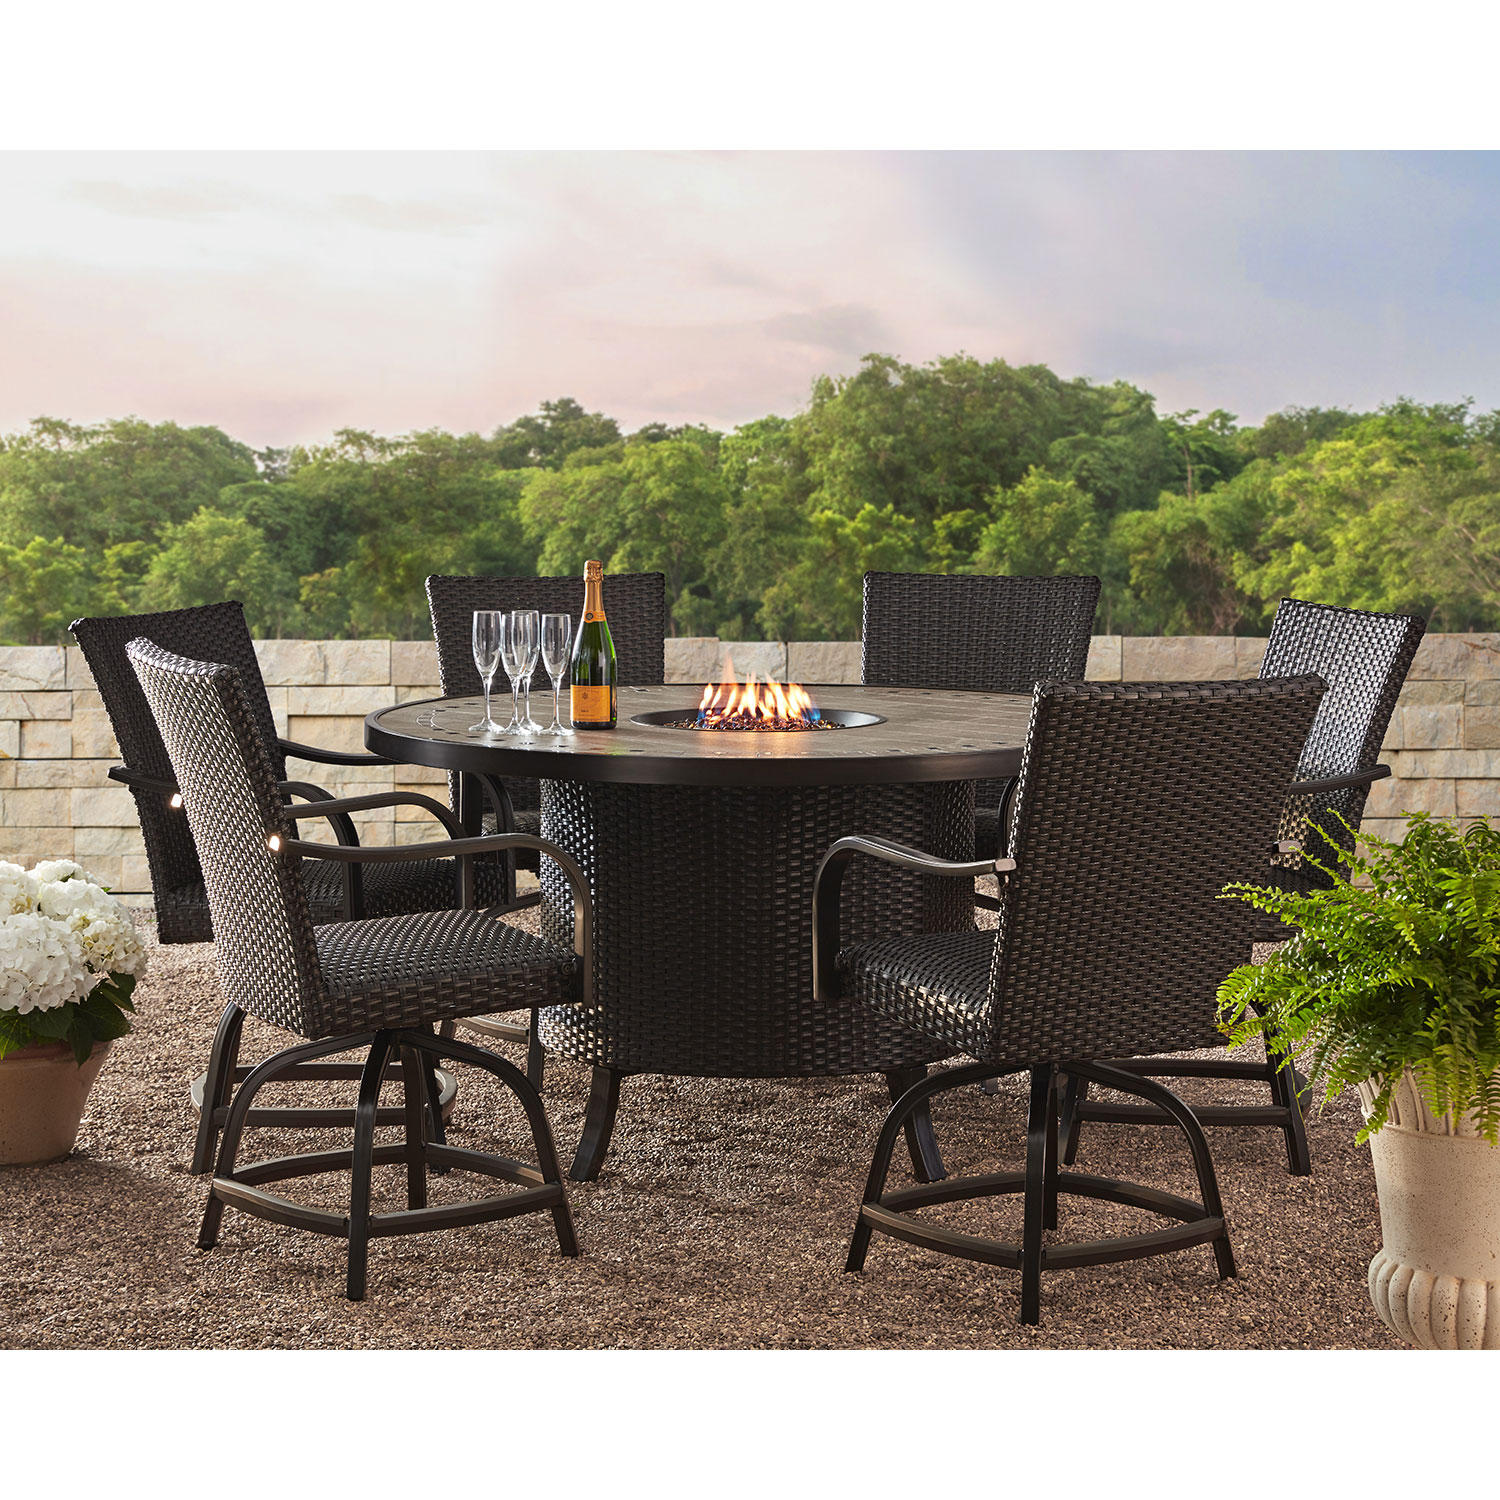 Member's Mark Agio Heritage 7-Piece Balcony Patio Dining Set with Fire Pit